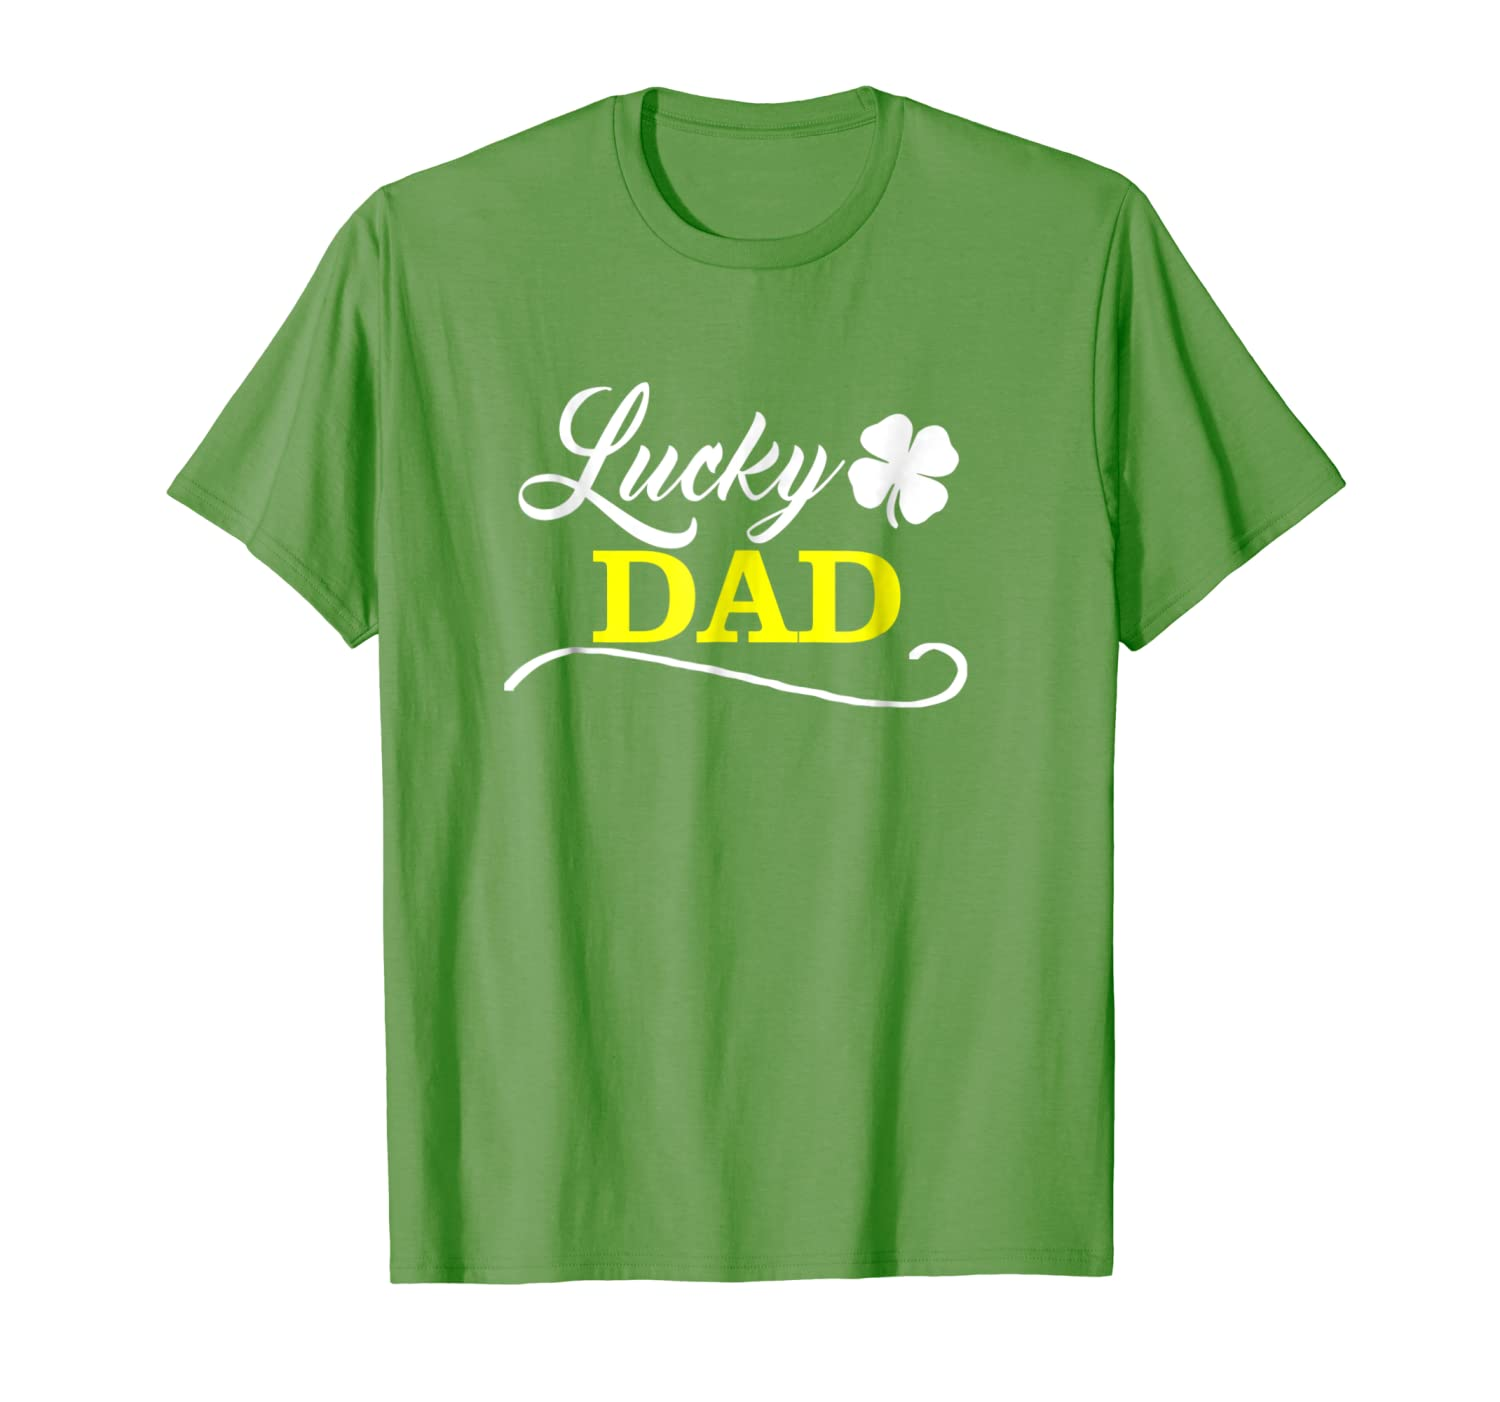 S Lucky Dad Fun Family Saint Patrick S Day Holiday T Shirt